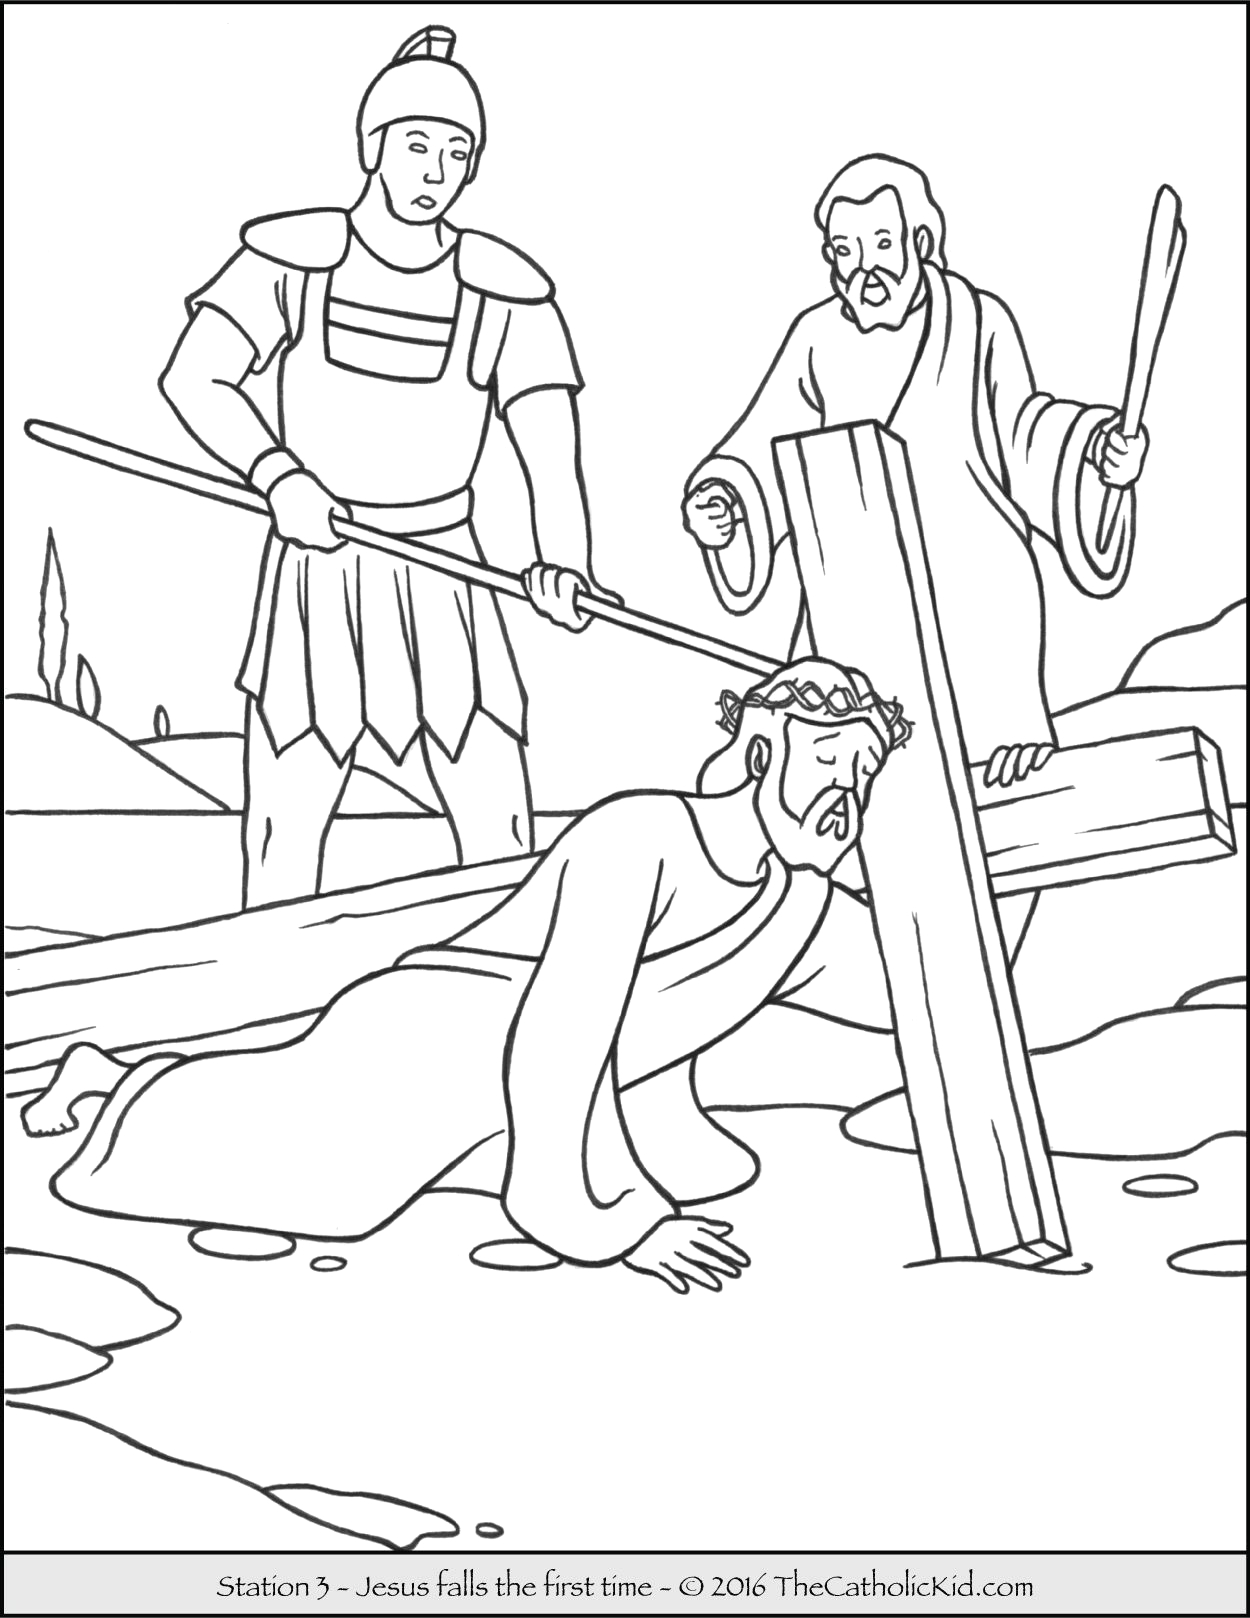 Free Printable Stations Of the Cross Coloring Pages Stations the Cross Coloring Page Coloring Home